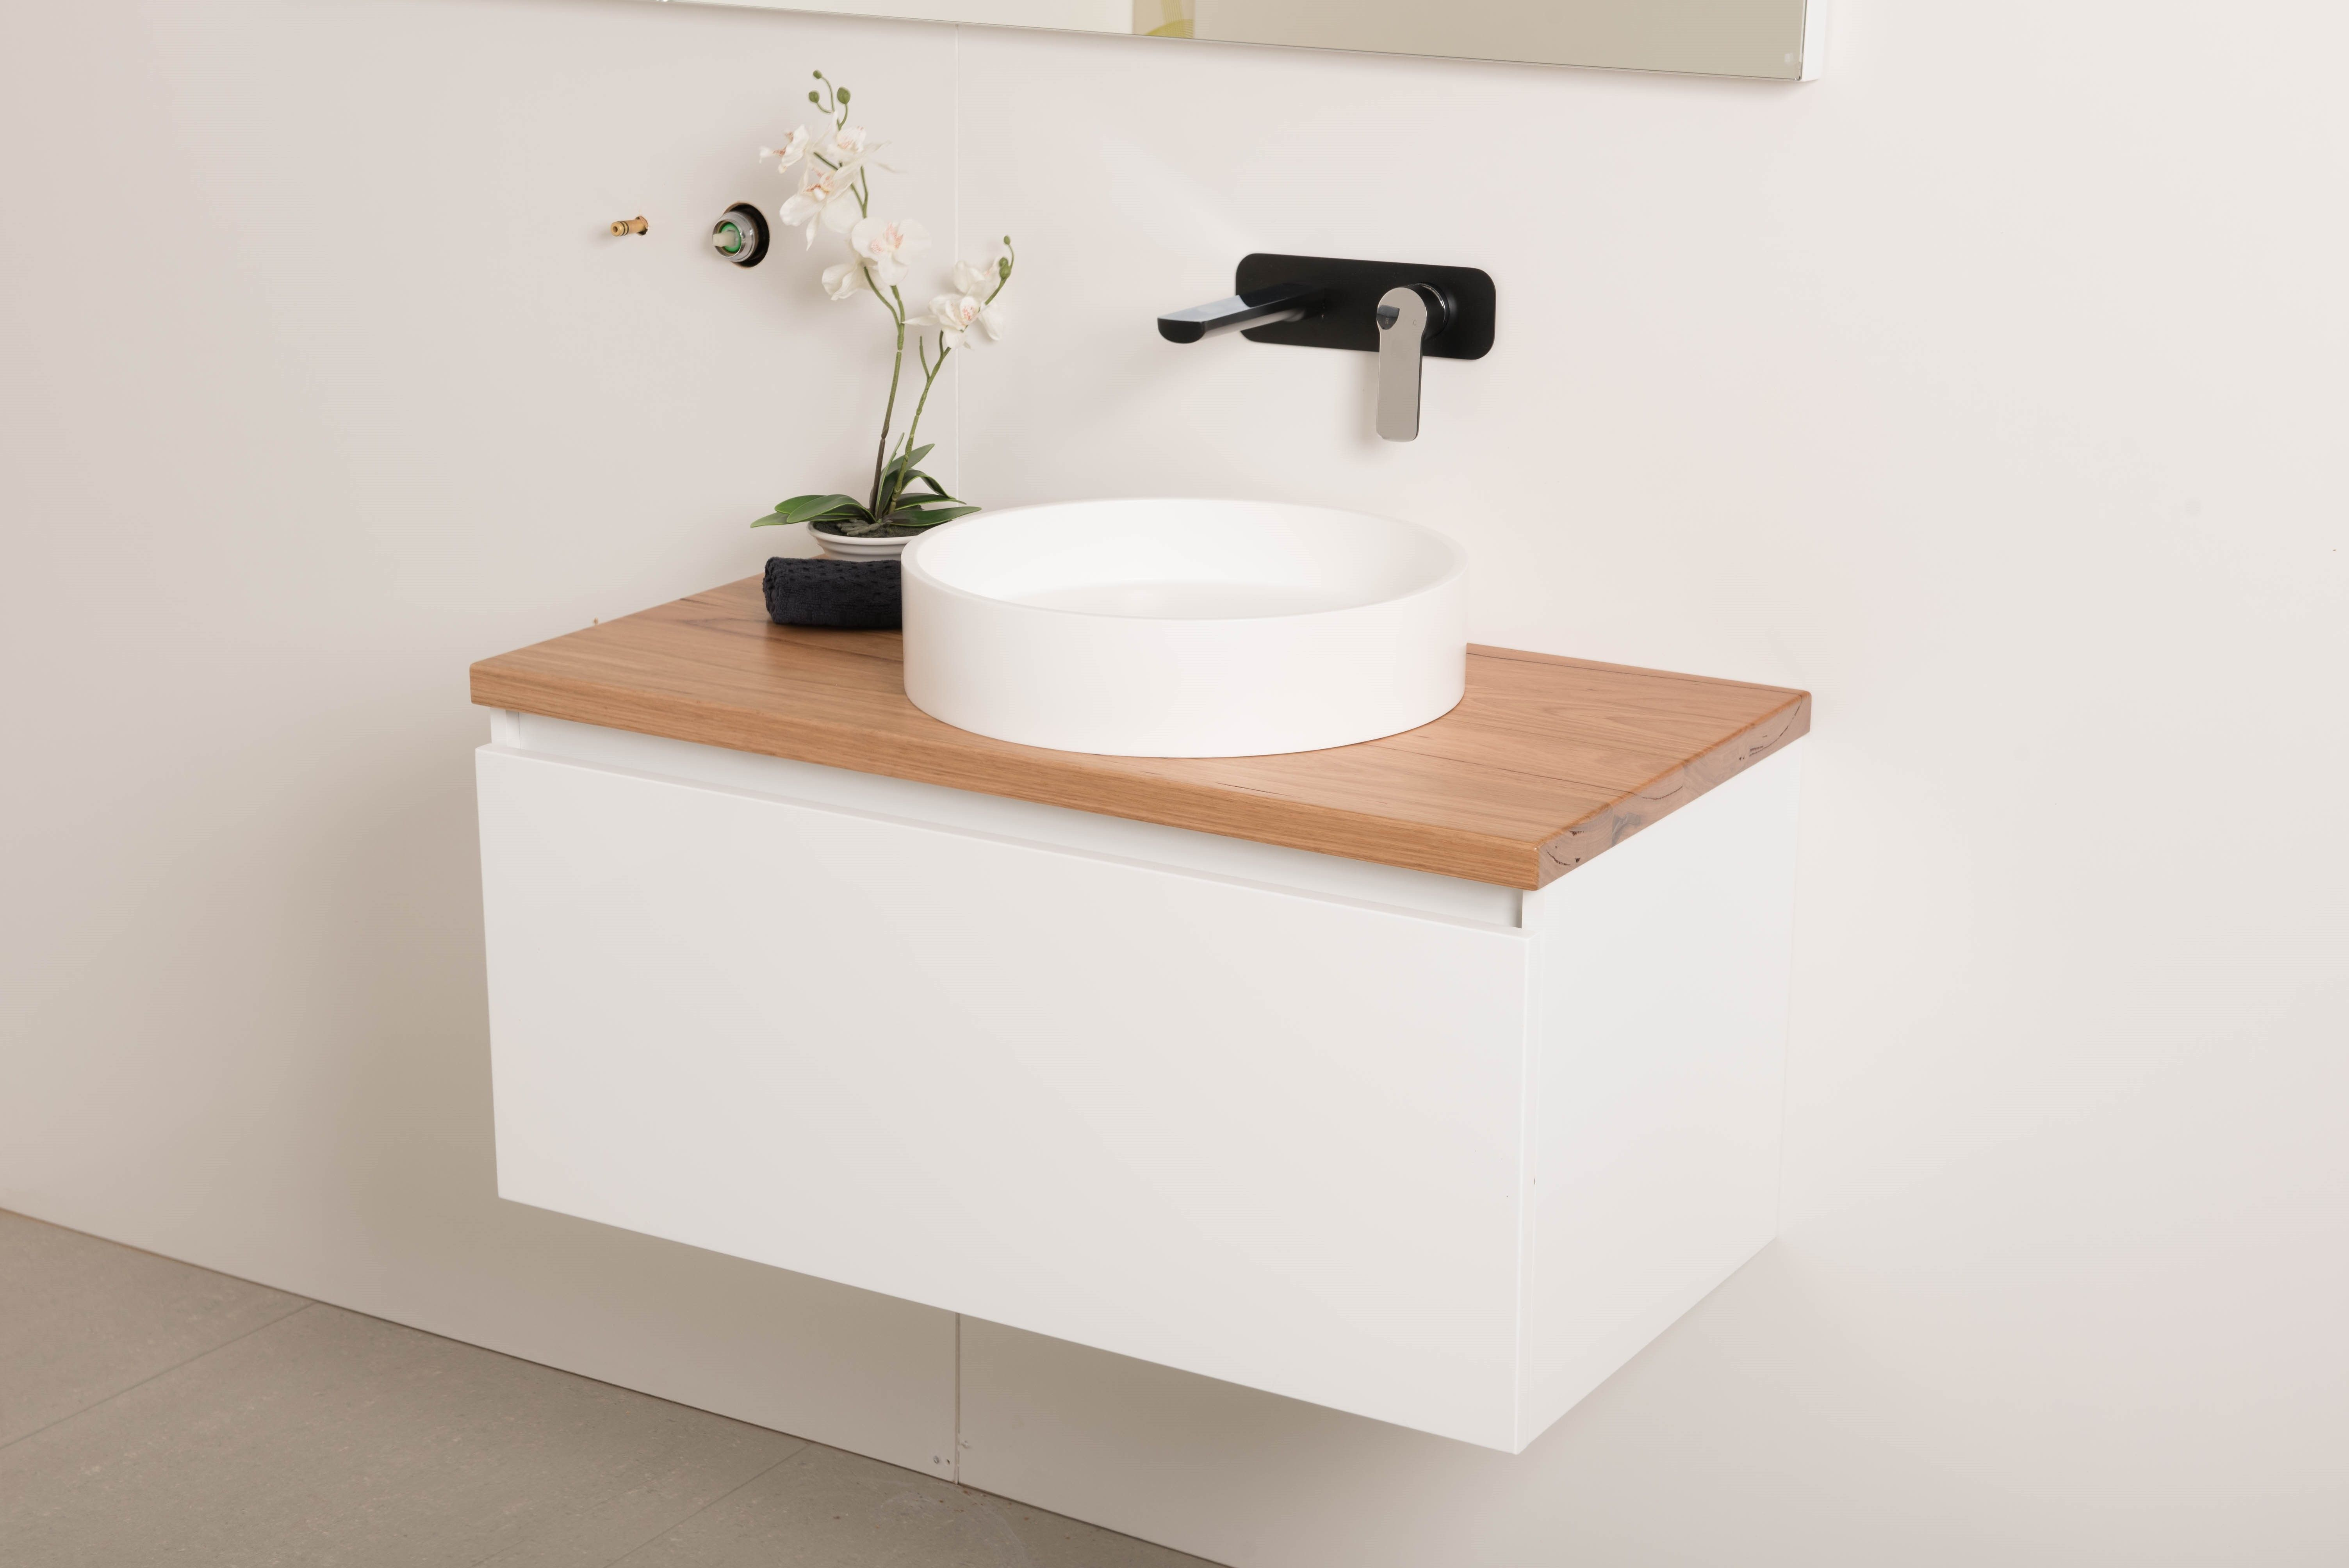 pleasing wall hung vanities for small bathrooms. Reuben 900 Wall Hung Vanity with Timber Top and Aurora Basin